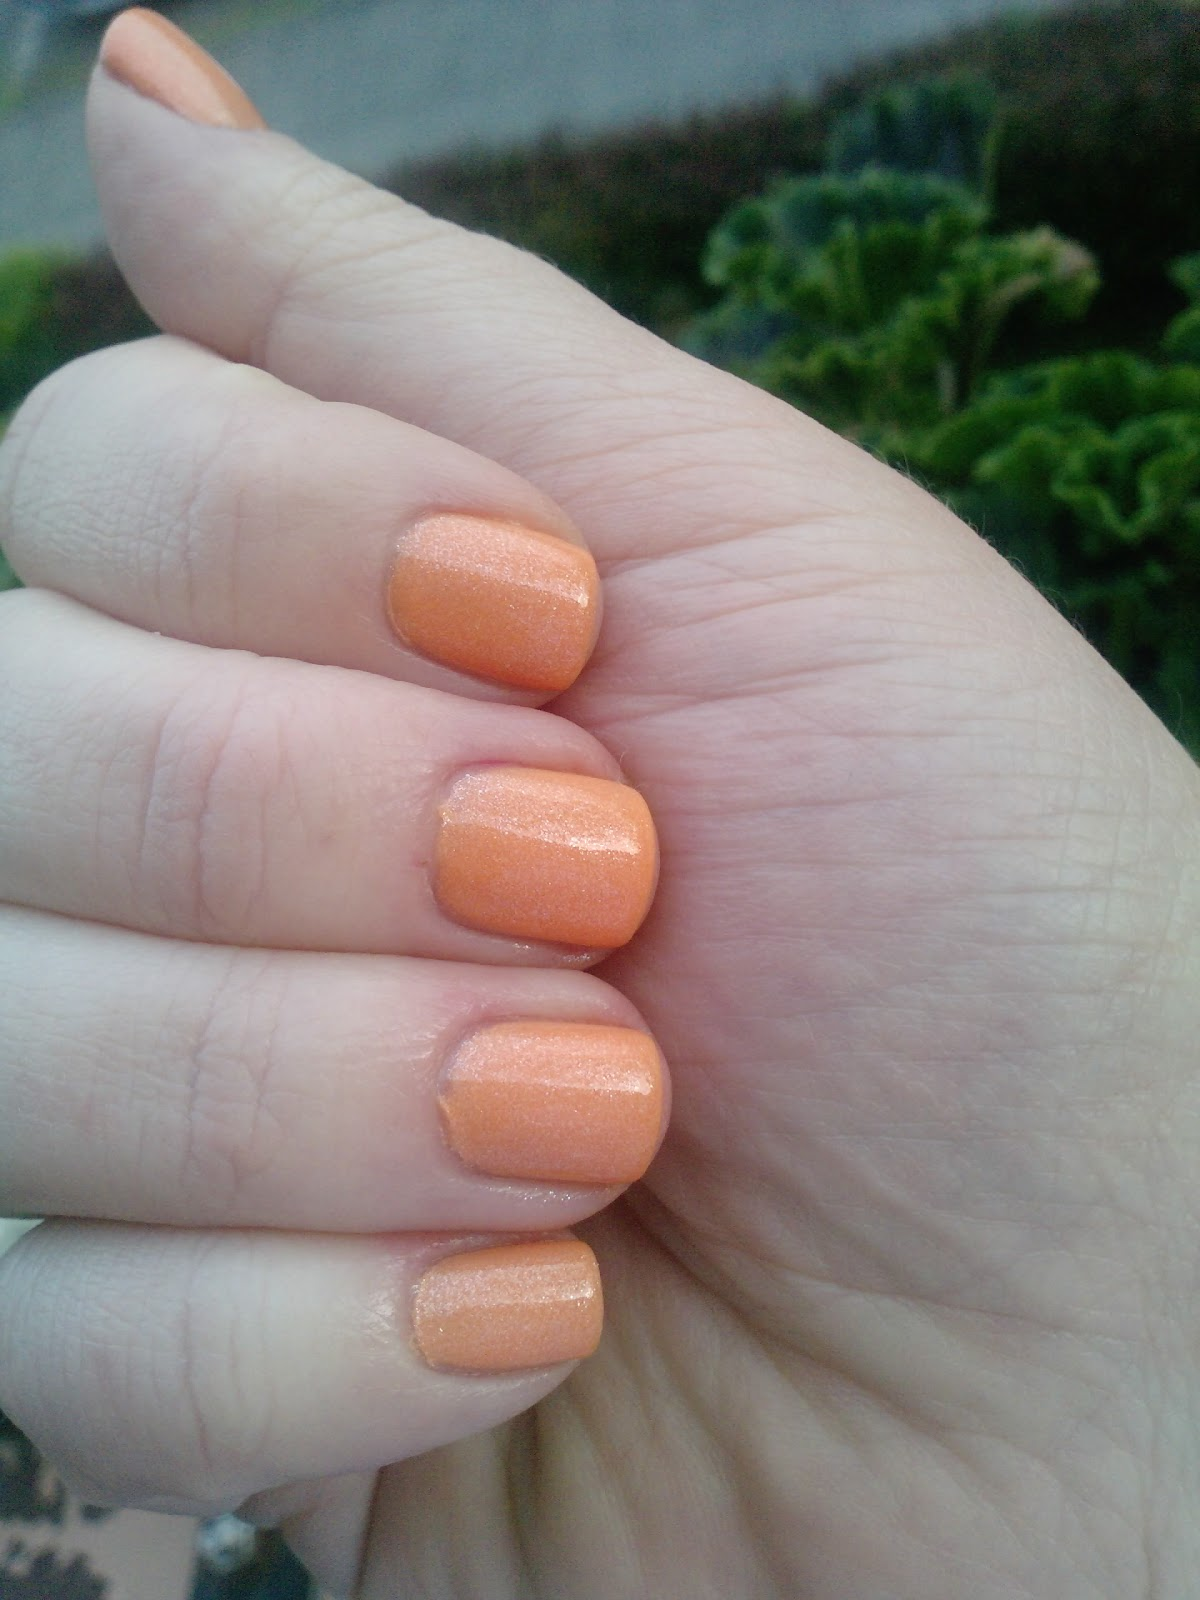 hautnah beauty swatch p2 color me softly nail polish in 020 pearly orange. Black Bedroom Furniture Sets. Home Design Ideas